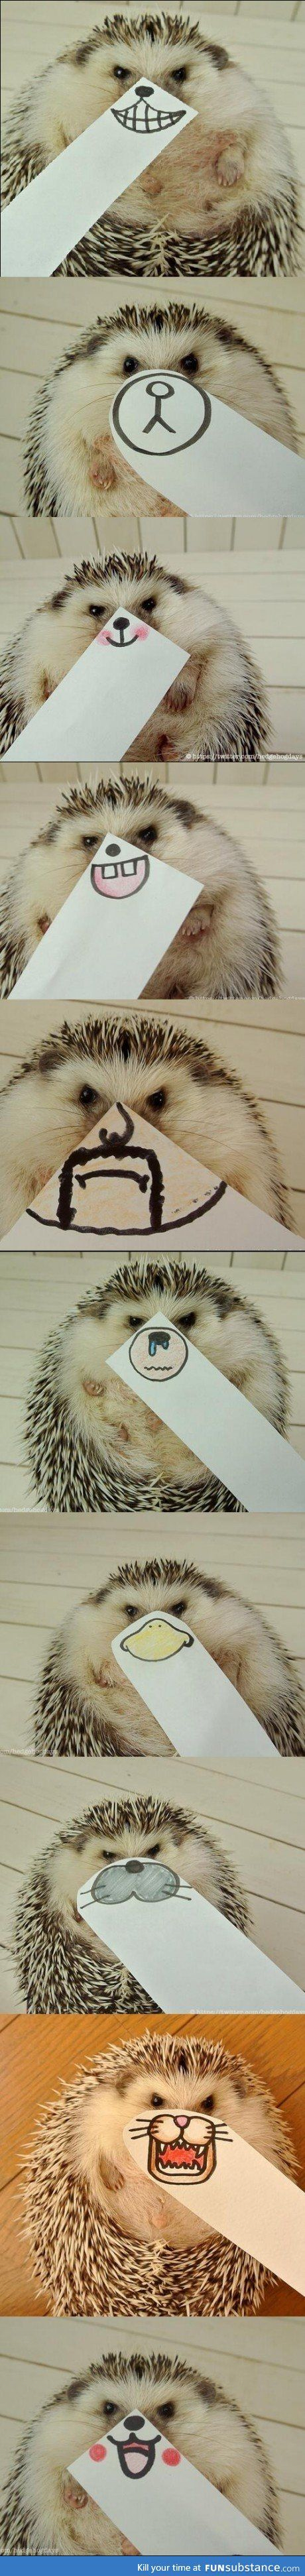 Hedgehog- why is this so funny